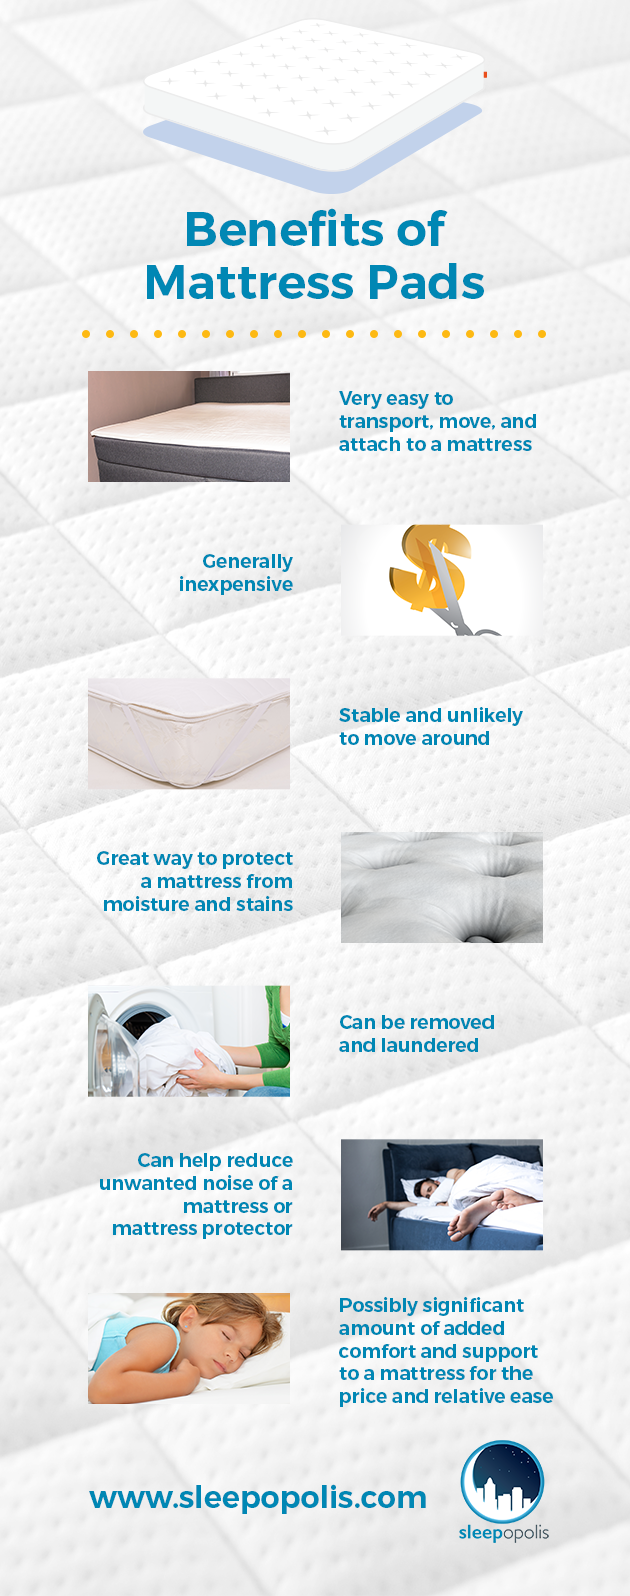 An infographic outlining the Benefits of Mattress Pads